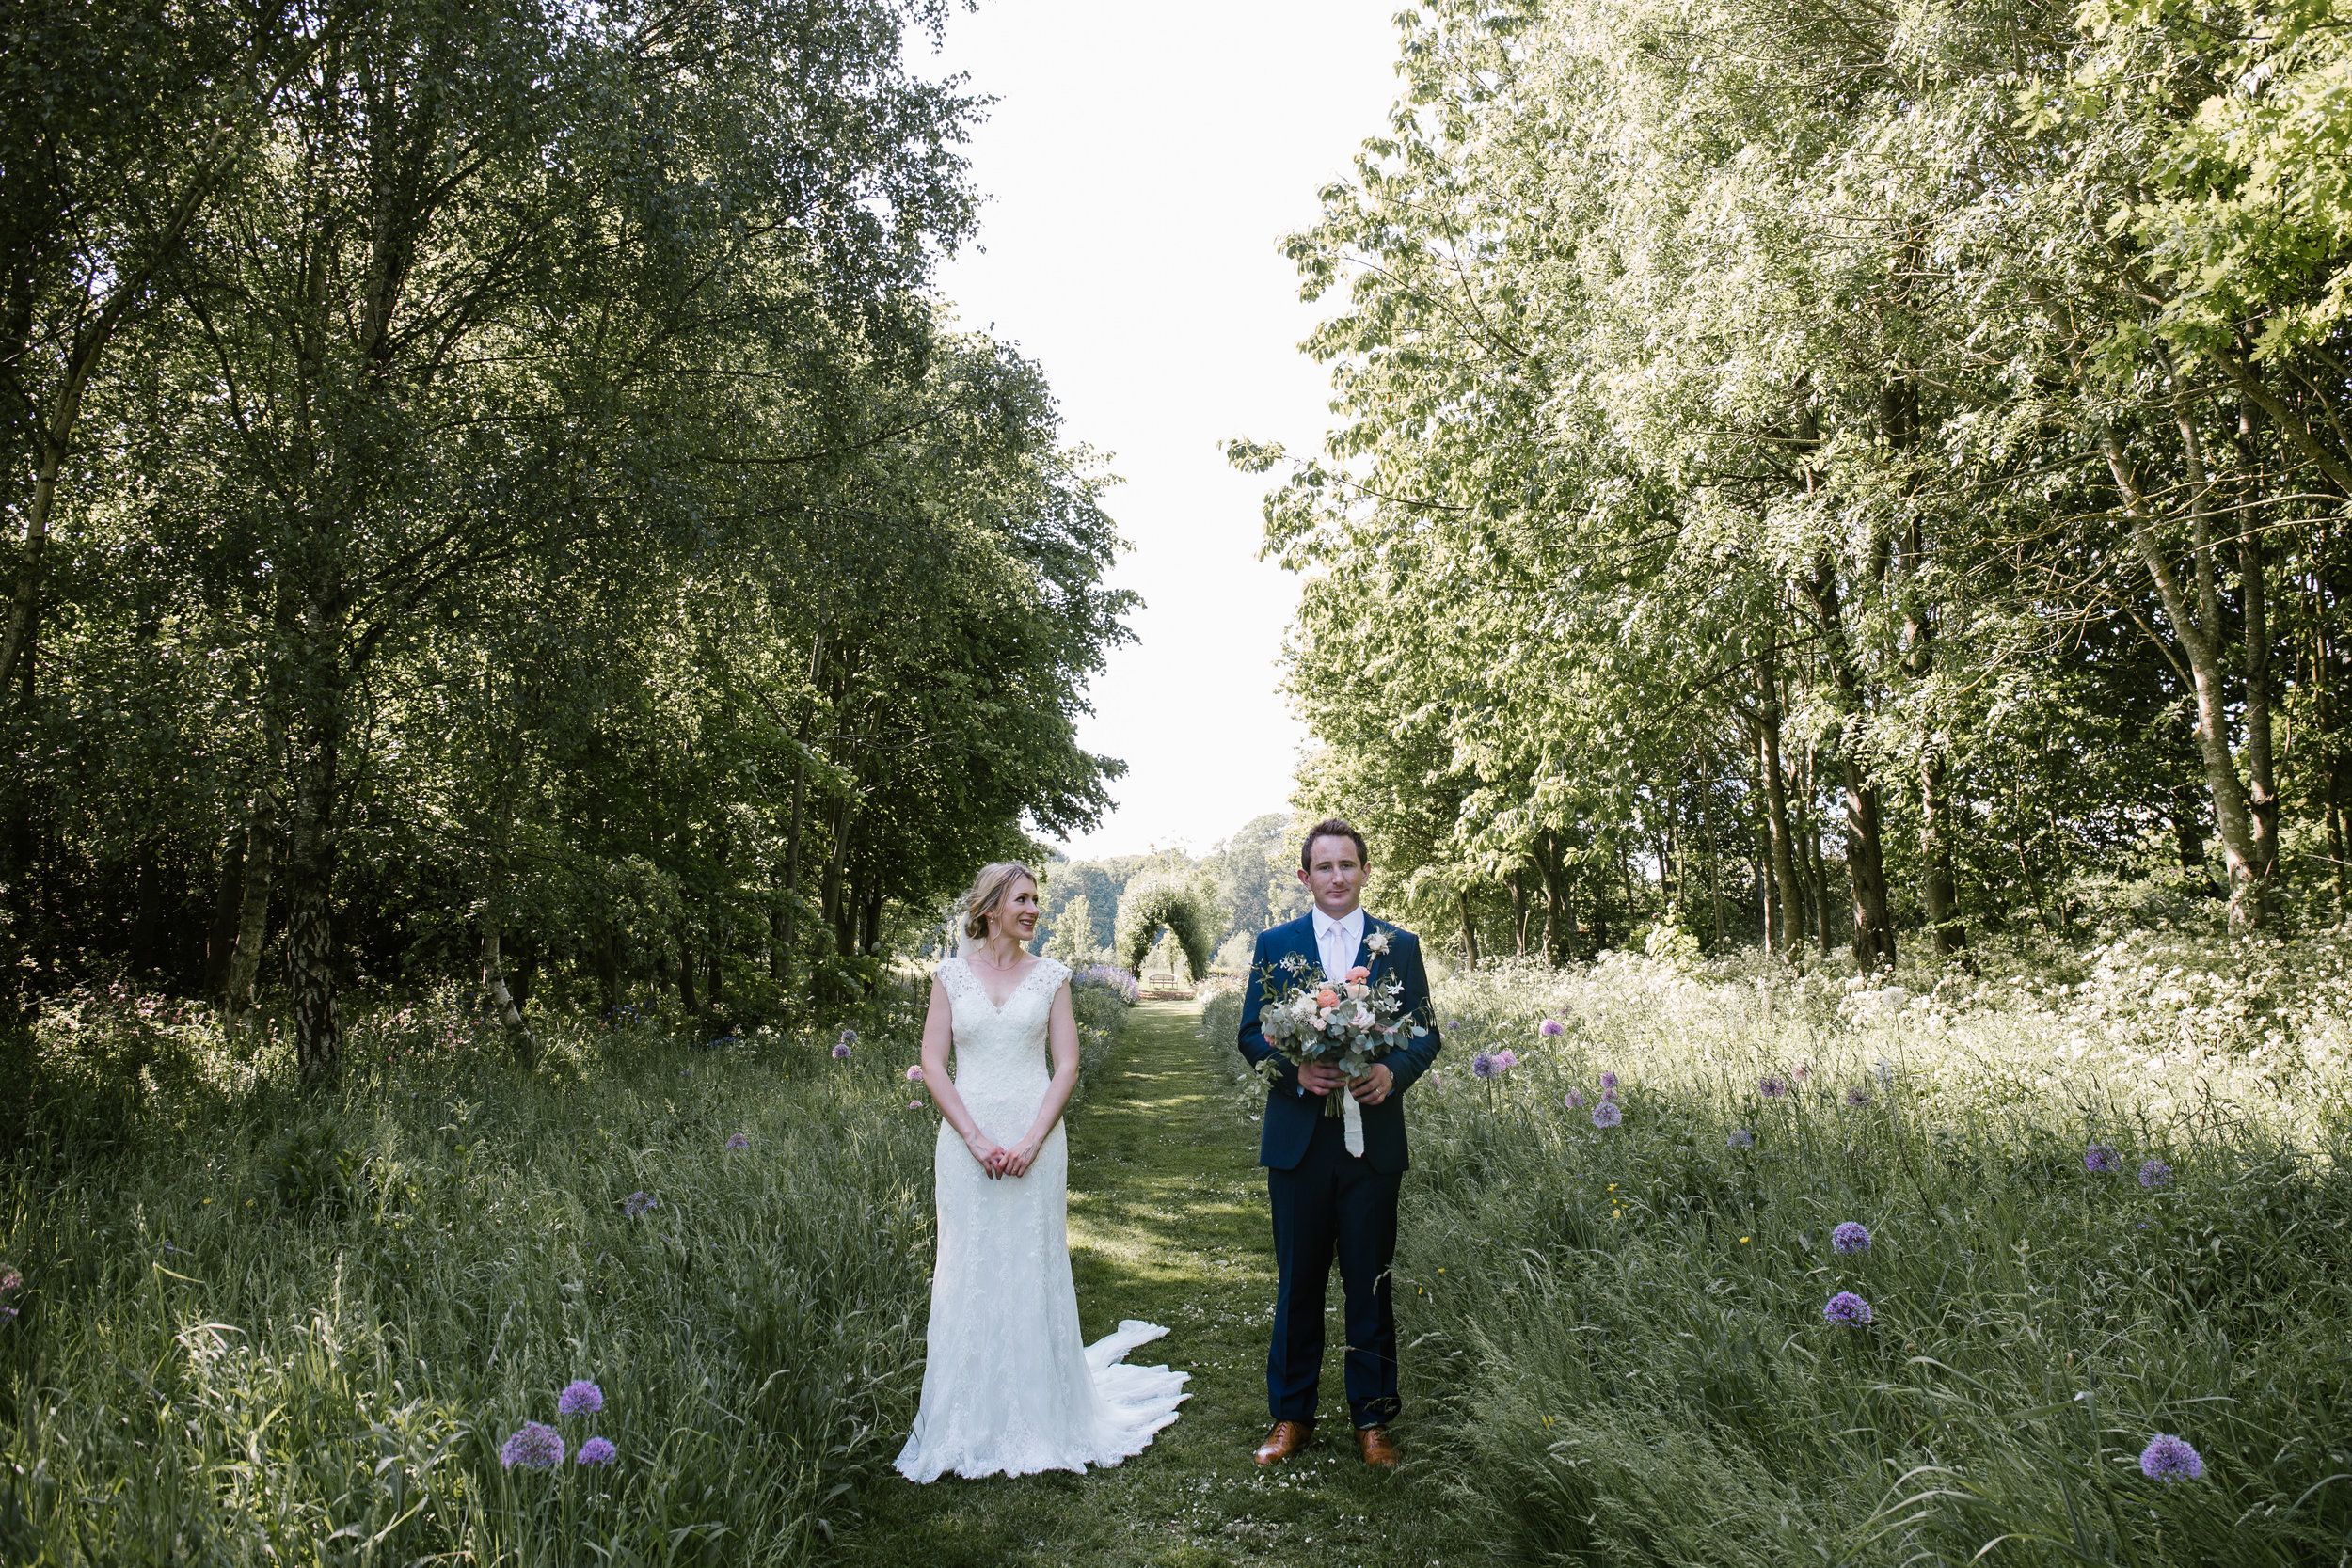 quirky photo of bride and groom at chaucer barns, the groom holds the wedding flowers